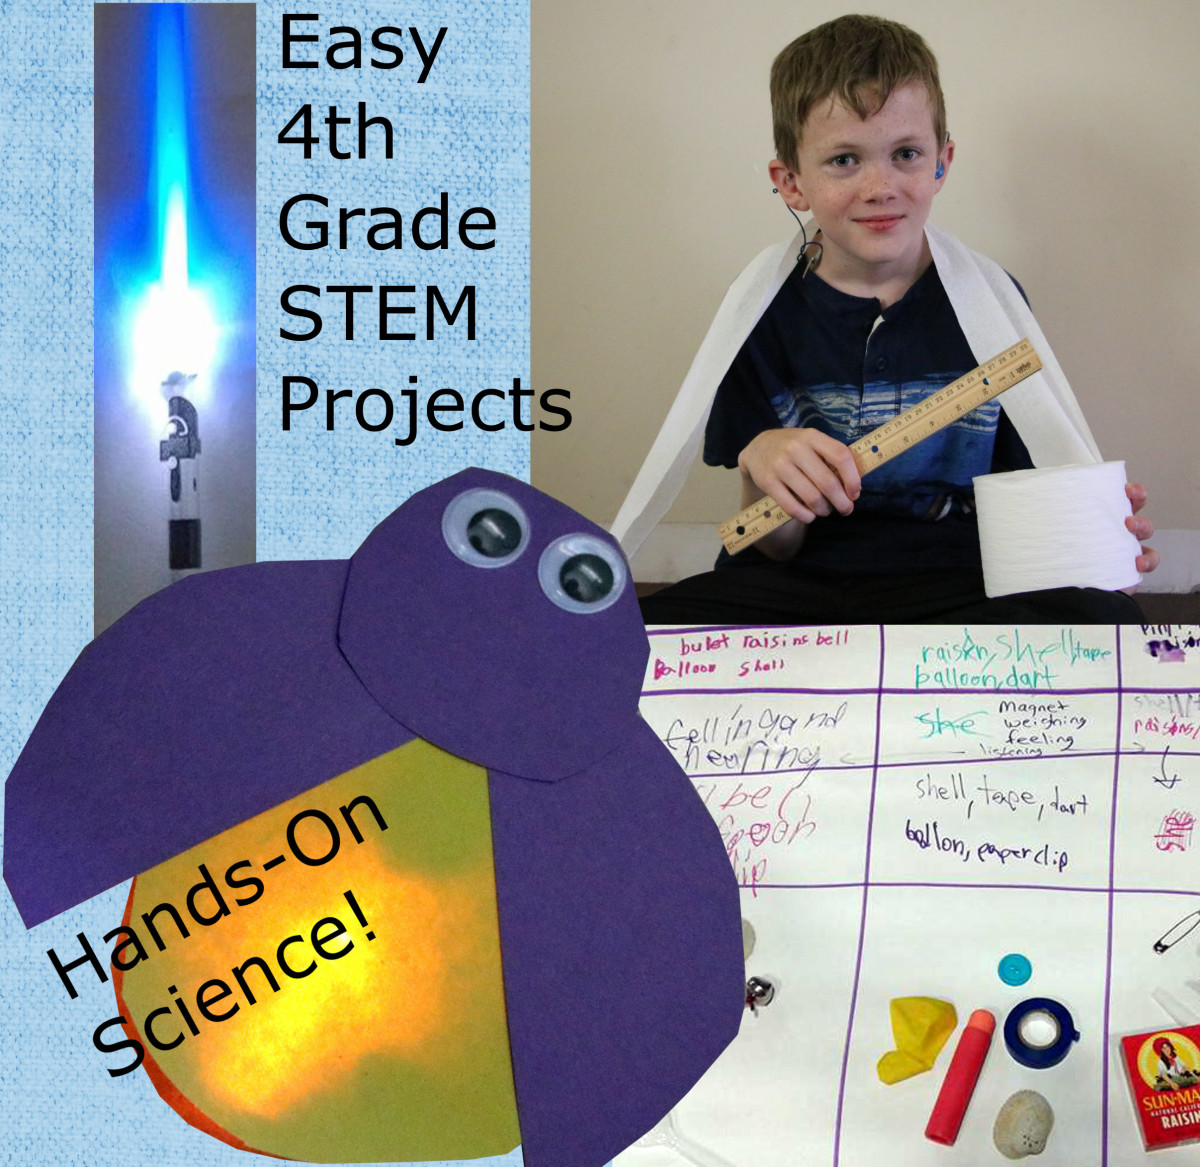 Easy Stem Activities for 4th Grade Students